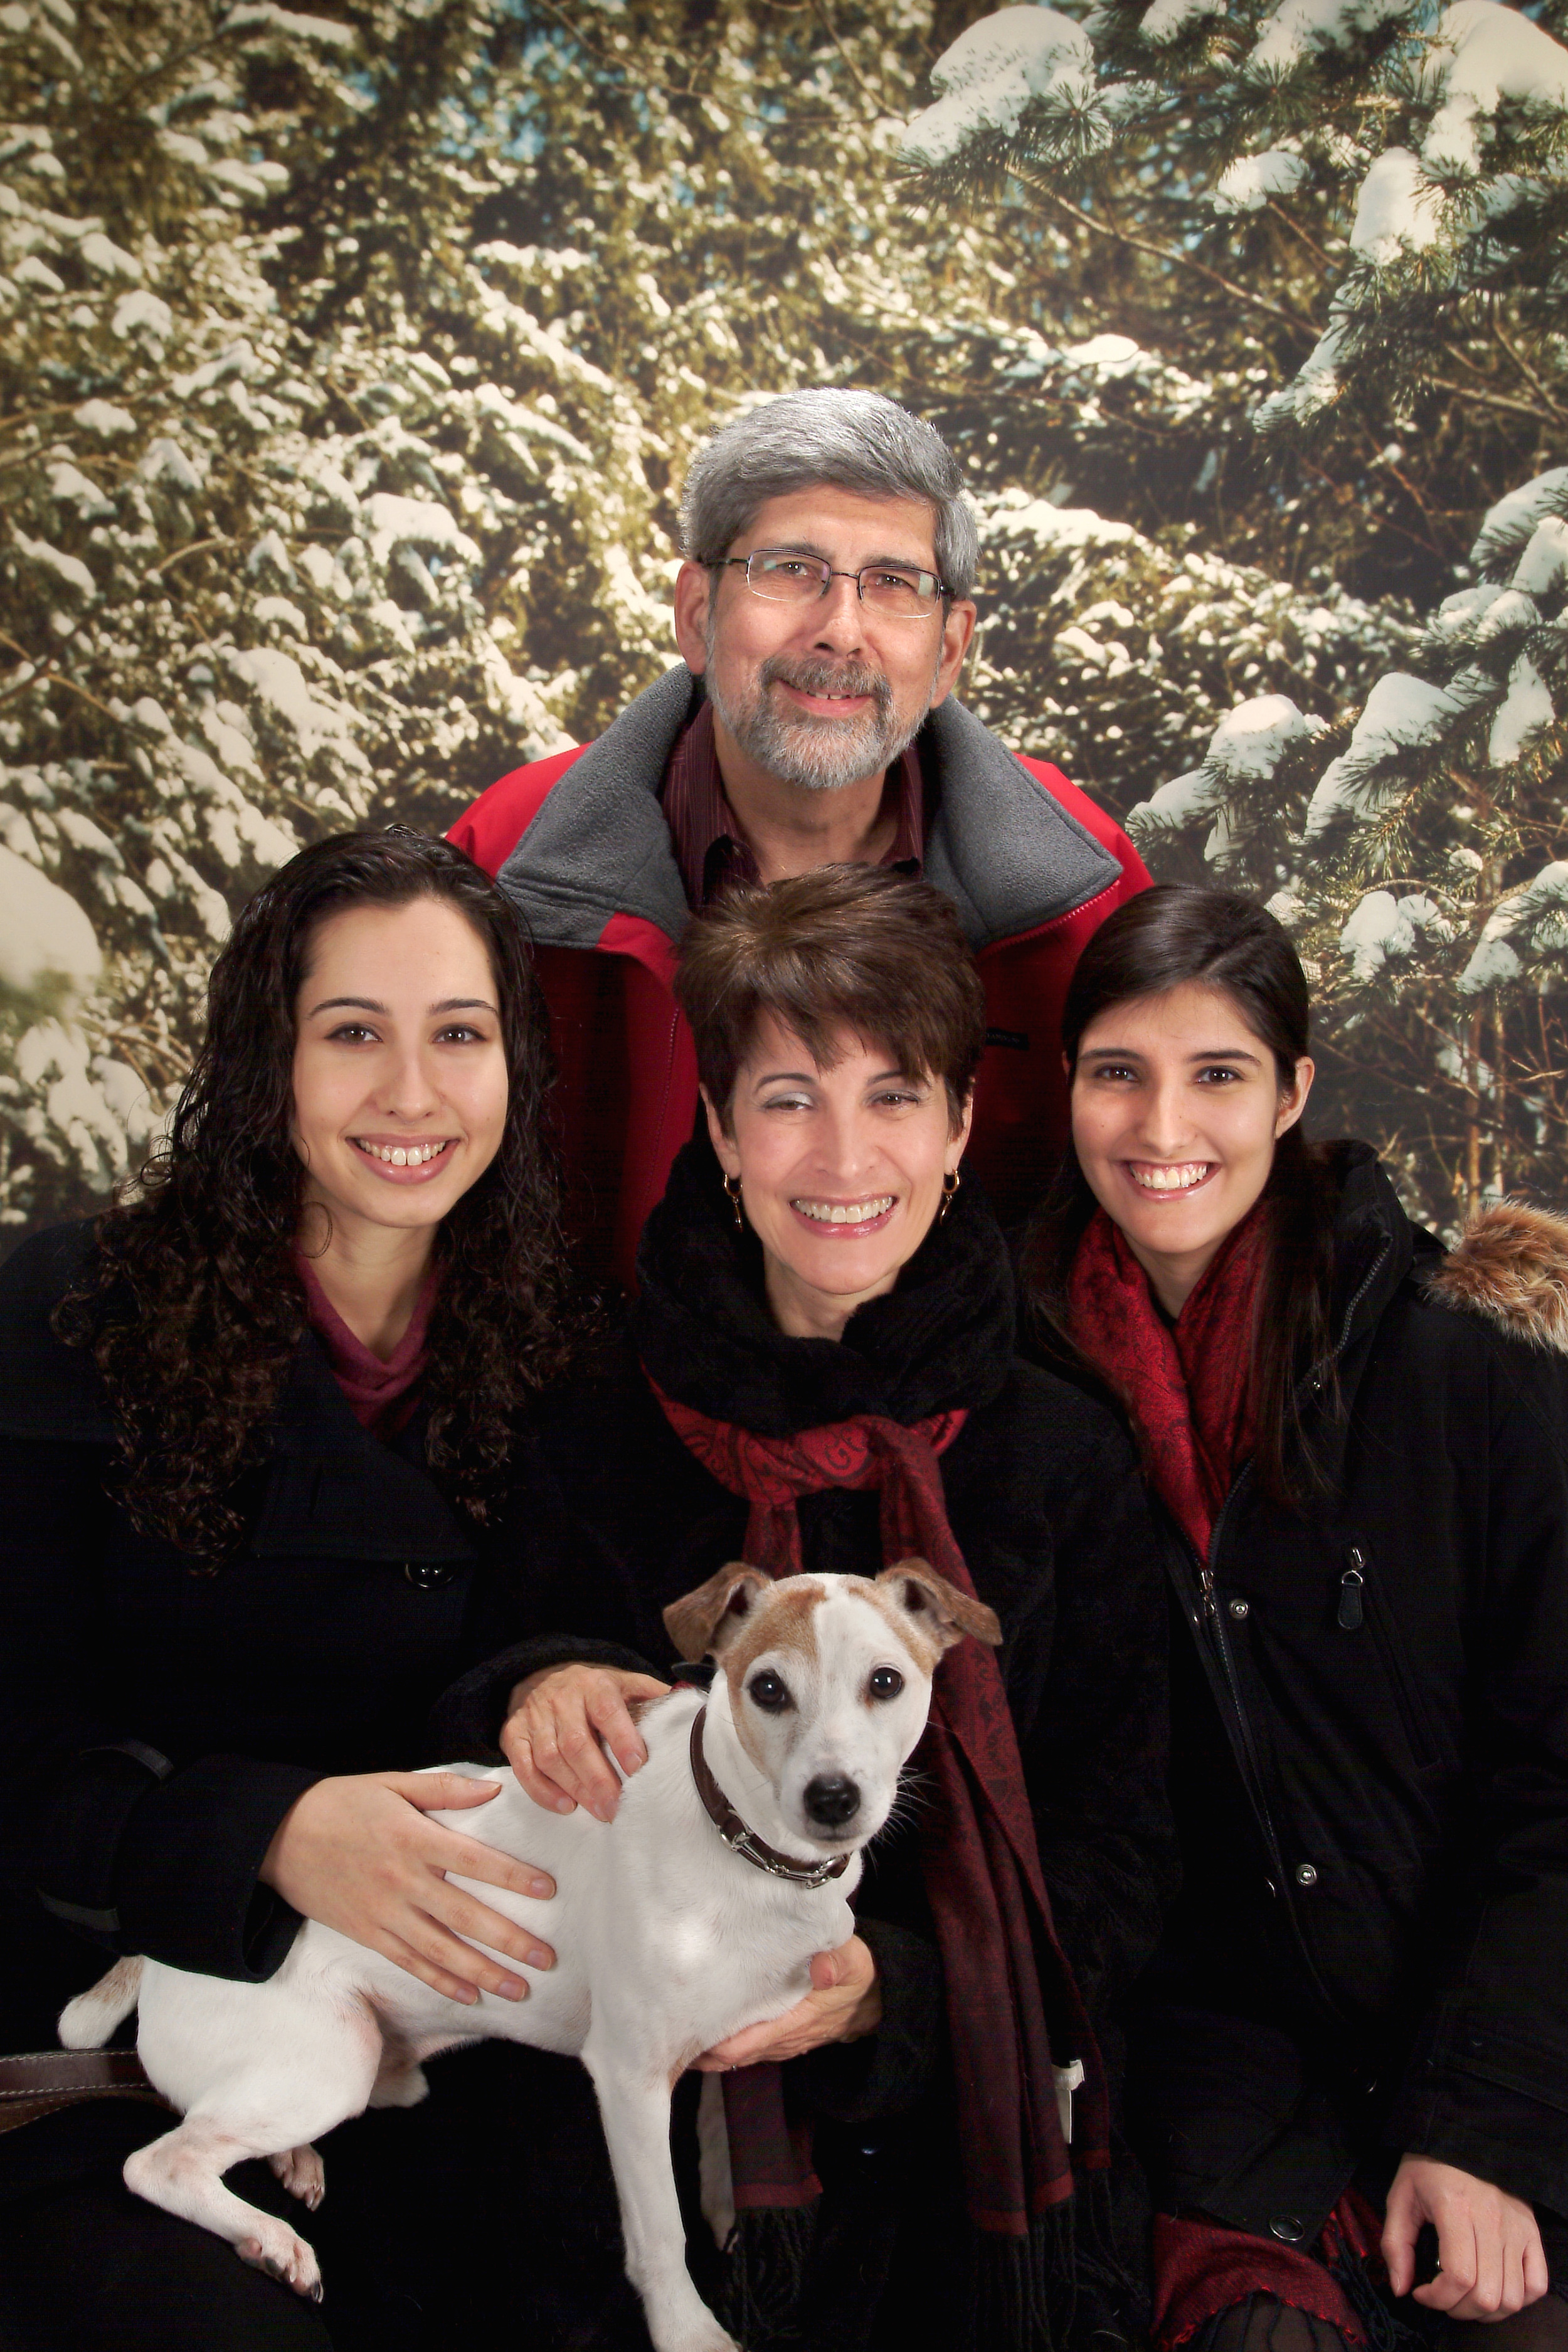 with husband Robert Sirinek, daughters Portia and Margot, and Rusty the dog